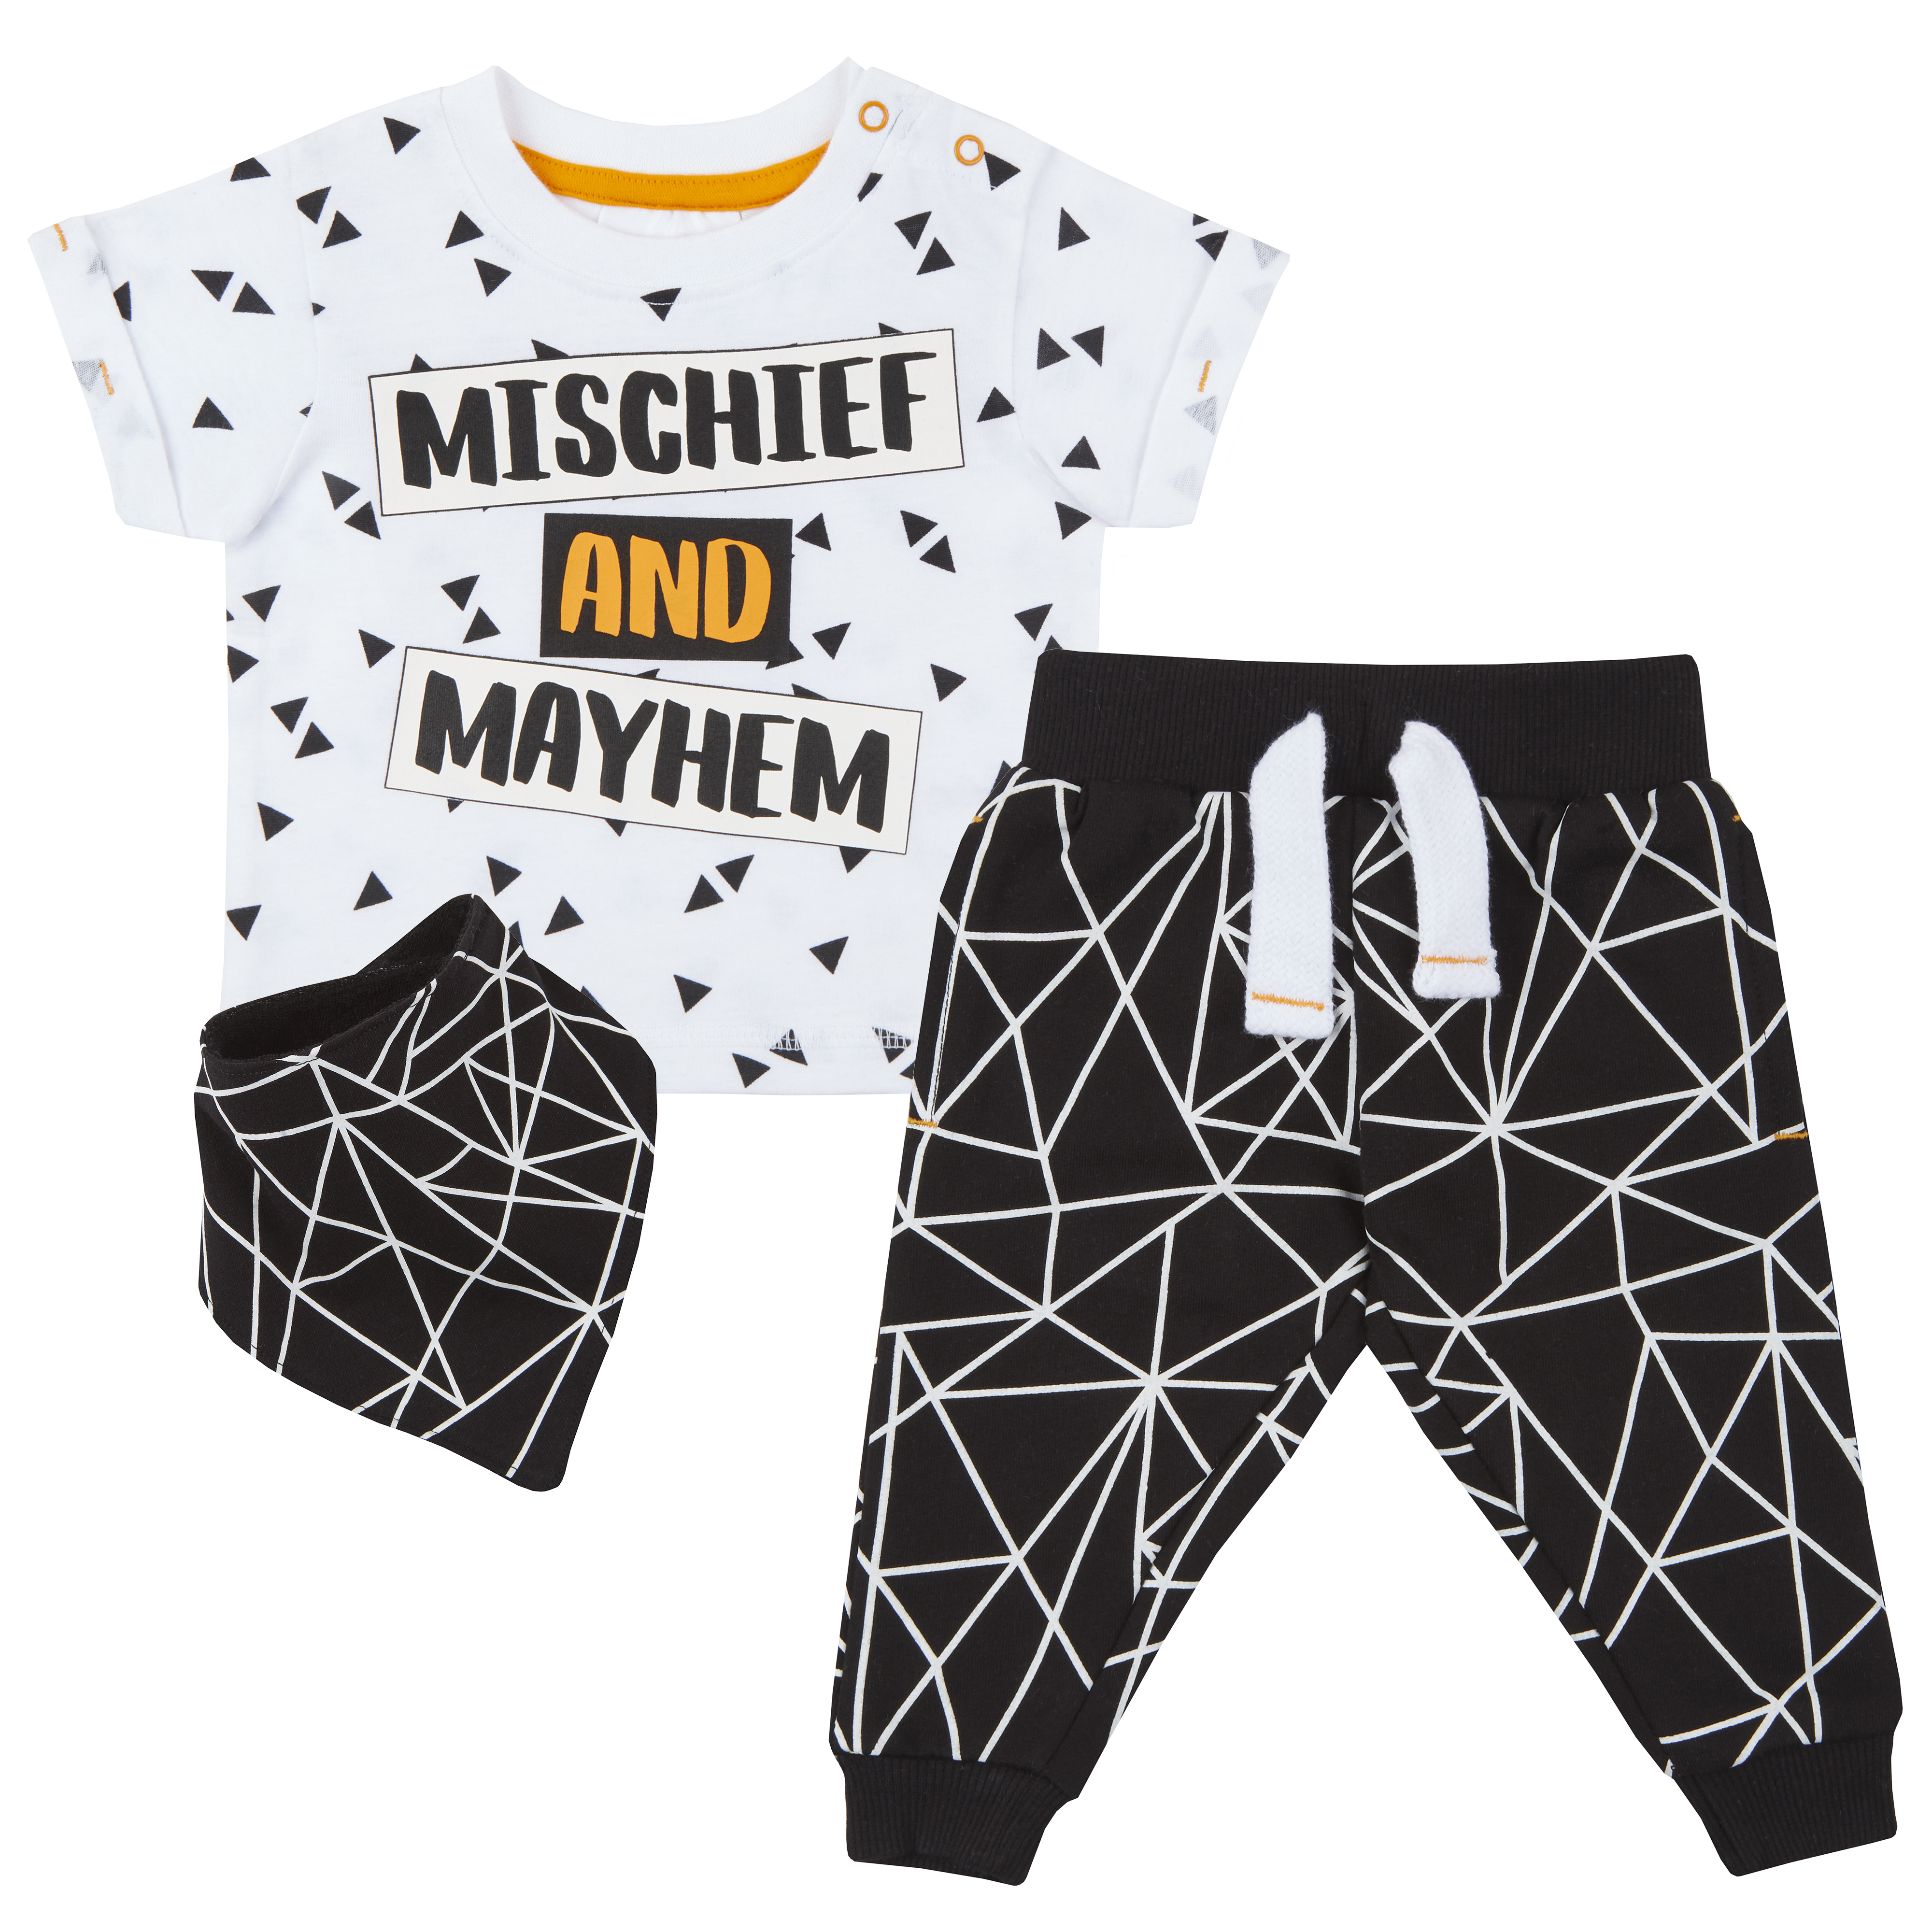 BNWT Baby Toddler Boys Tracksuit Outfit Set Jumper /& Trousers 3-6//12-18 Months